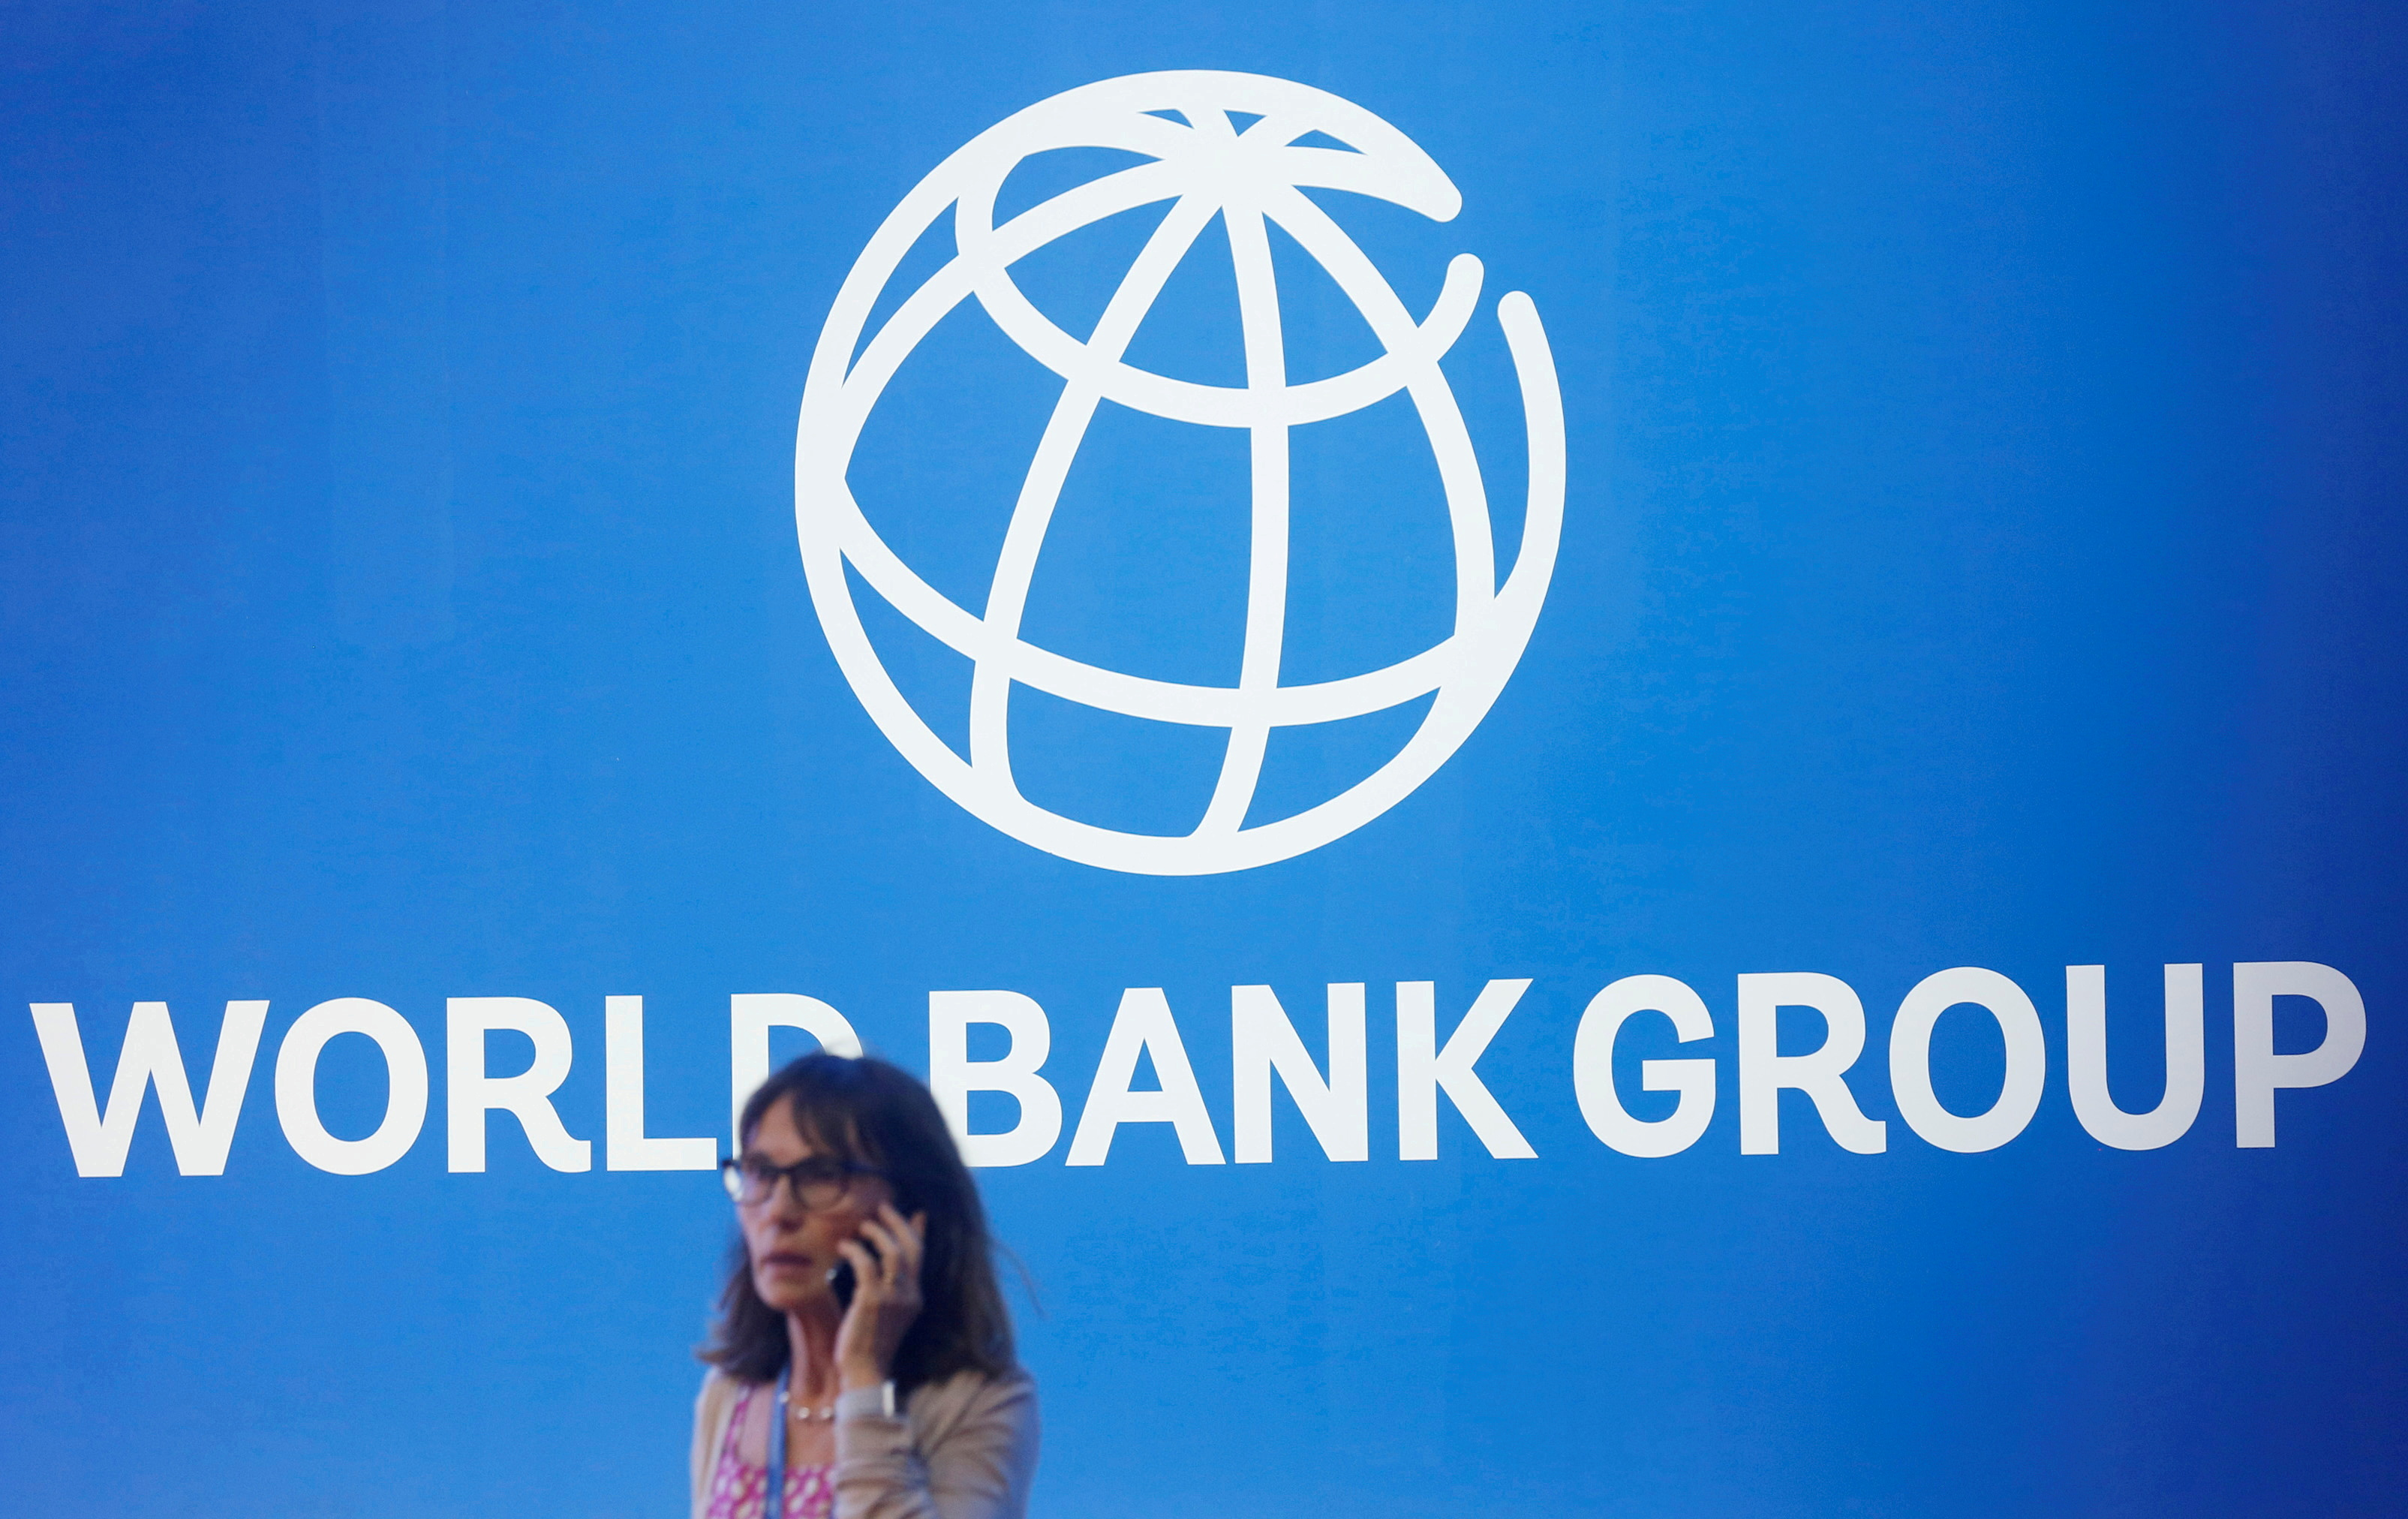 A participant stands near a logo of World Bank at the International Monetary Fund - World Bank Annual Meeting 2018 in Nusa Dua, Bali, Indonesia, October 12, 2018. REUTERS/Johannes P. Christo